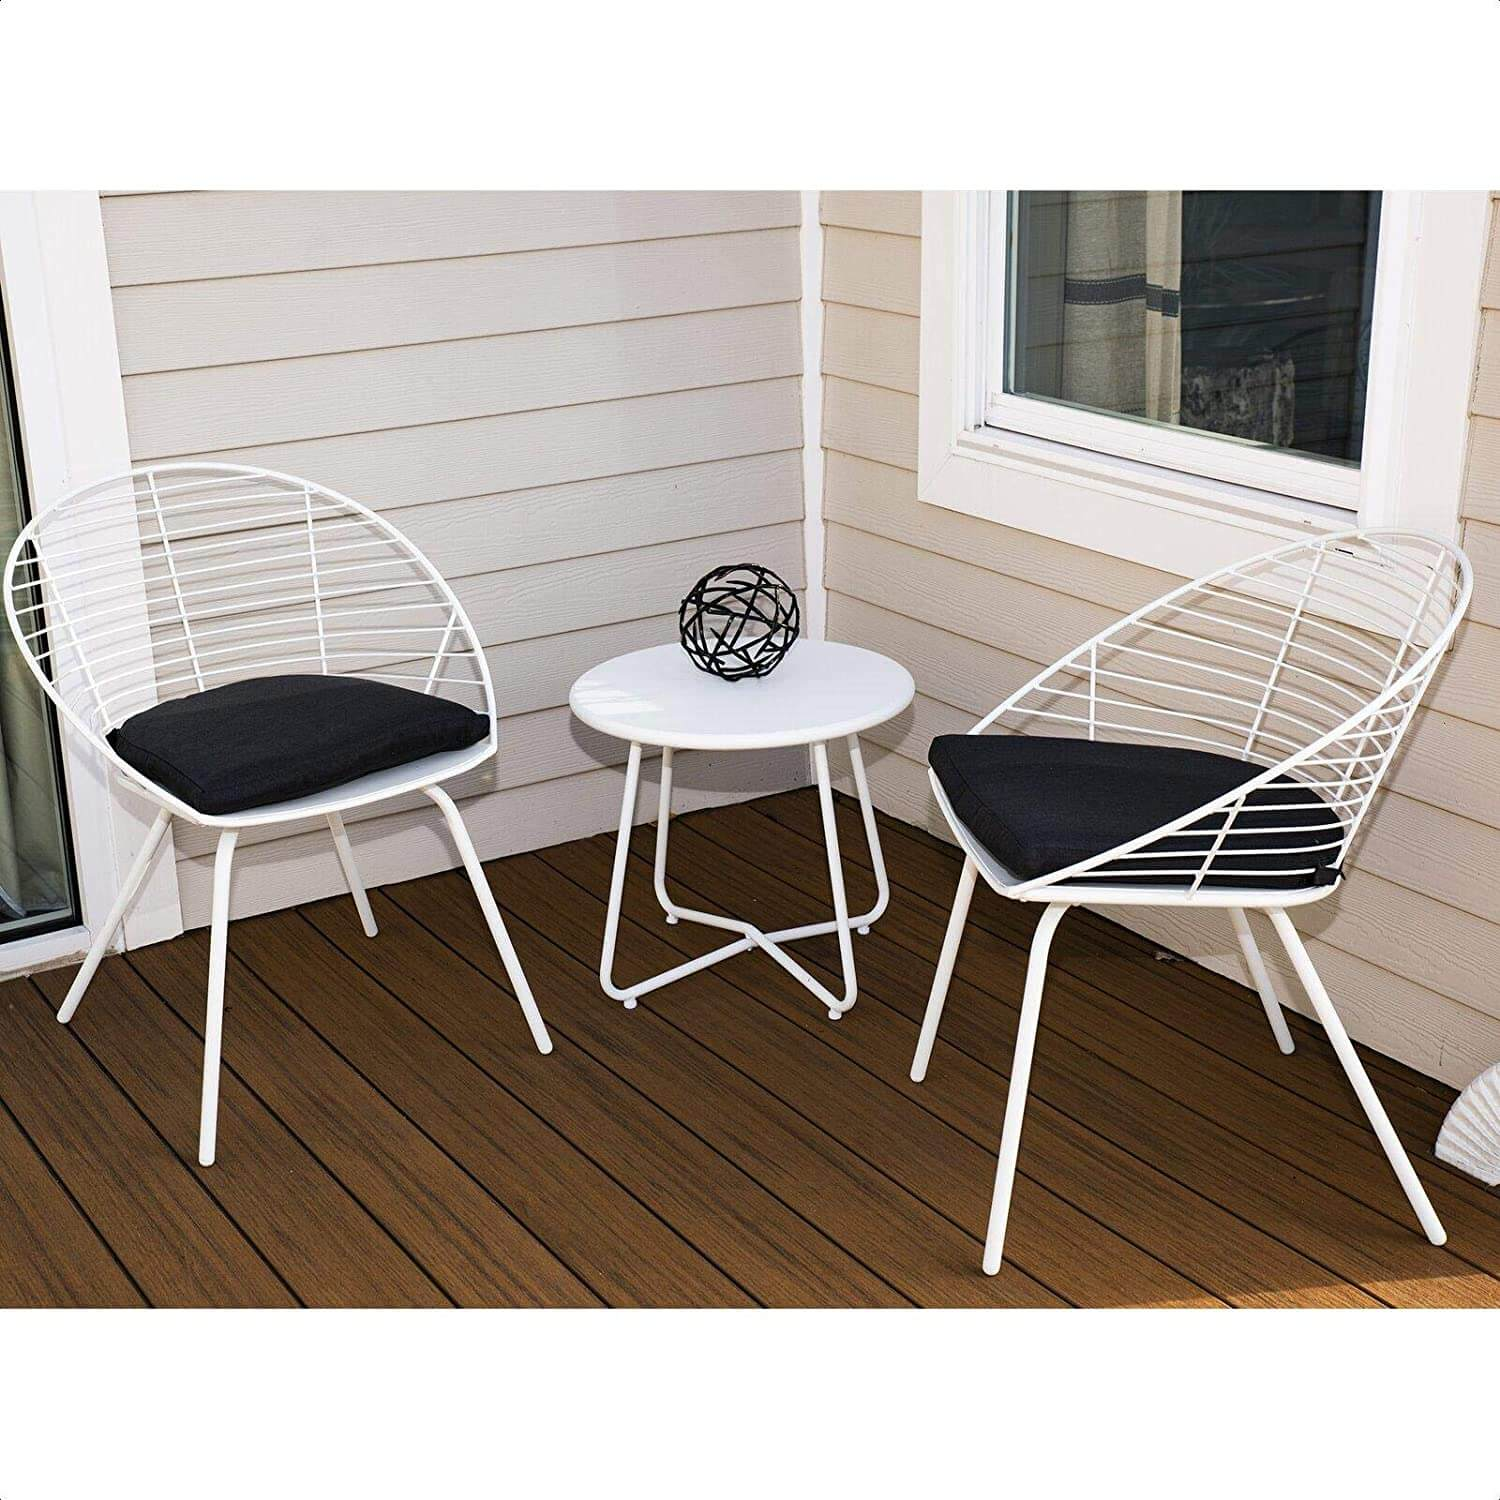 THE MINIMALIST ROUND PATIO TABLE AND CHAIRS